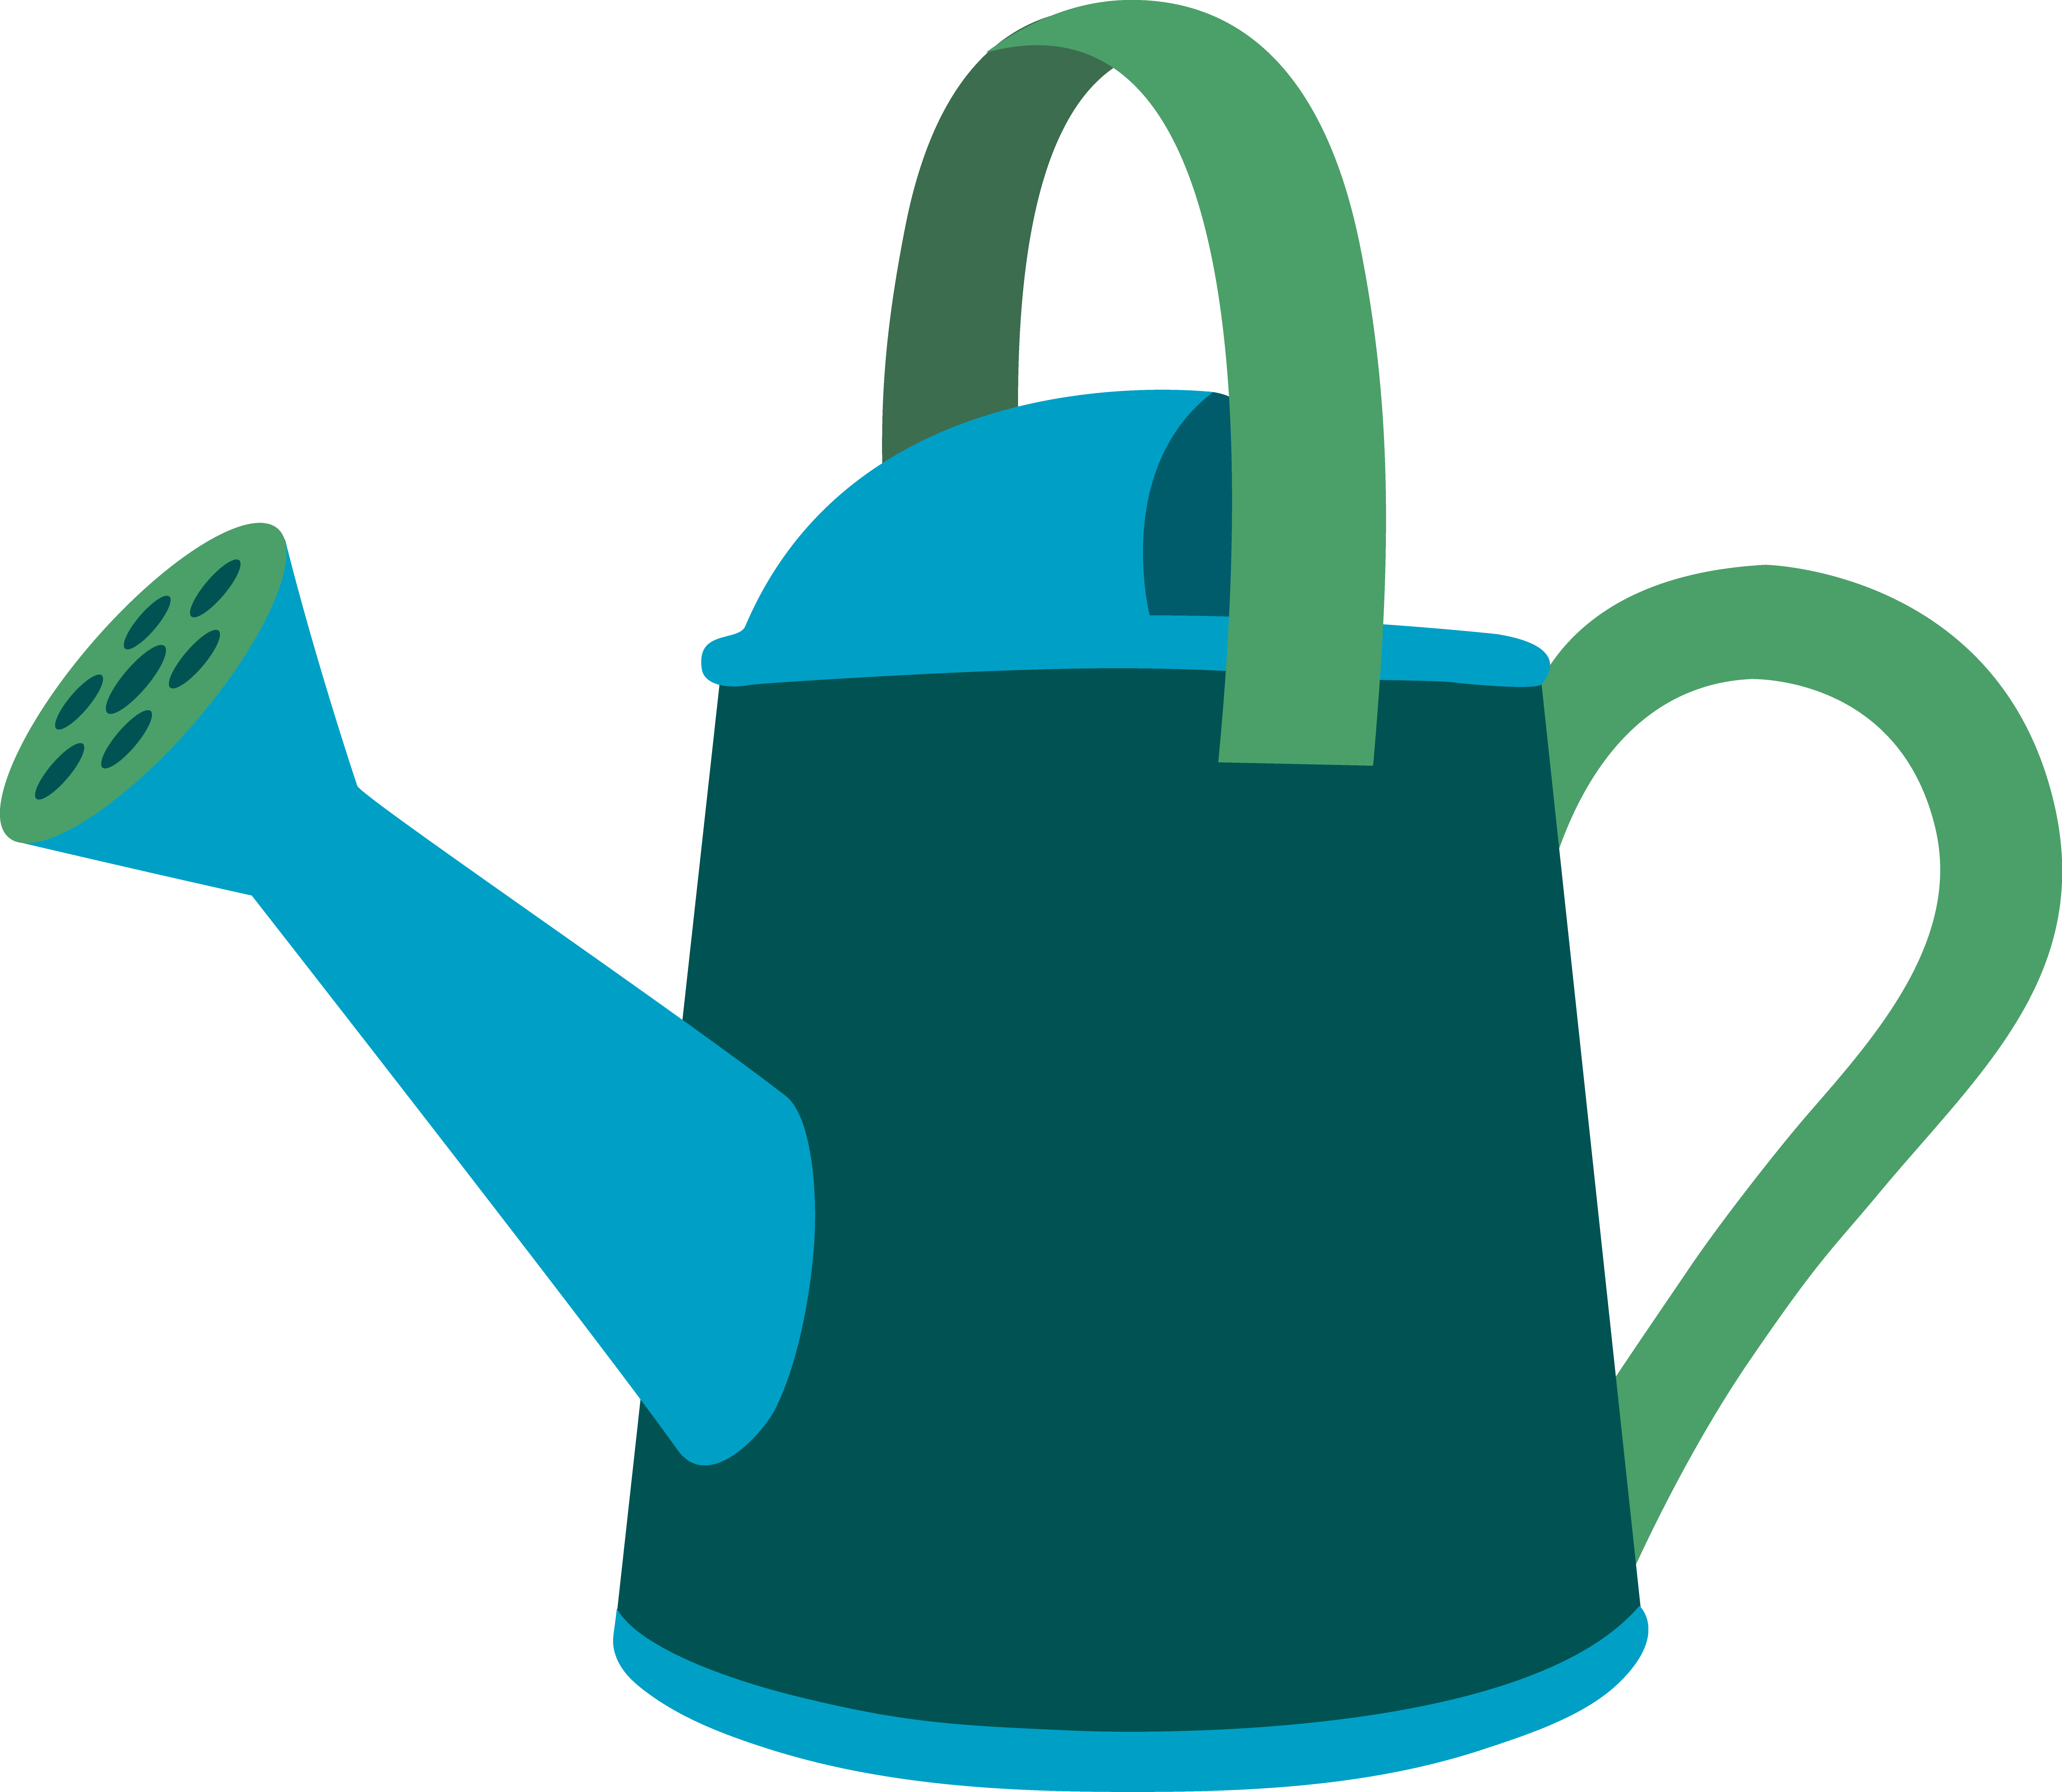 Watering can pictures clipart clip art transparent download Free Watering Can Pictures, Download Free Clip Art, Free ... clip art transparent download